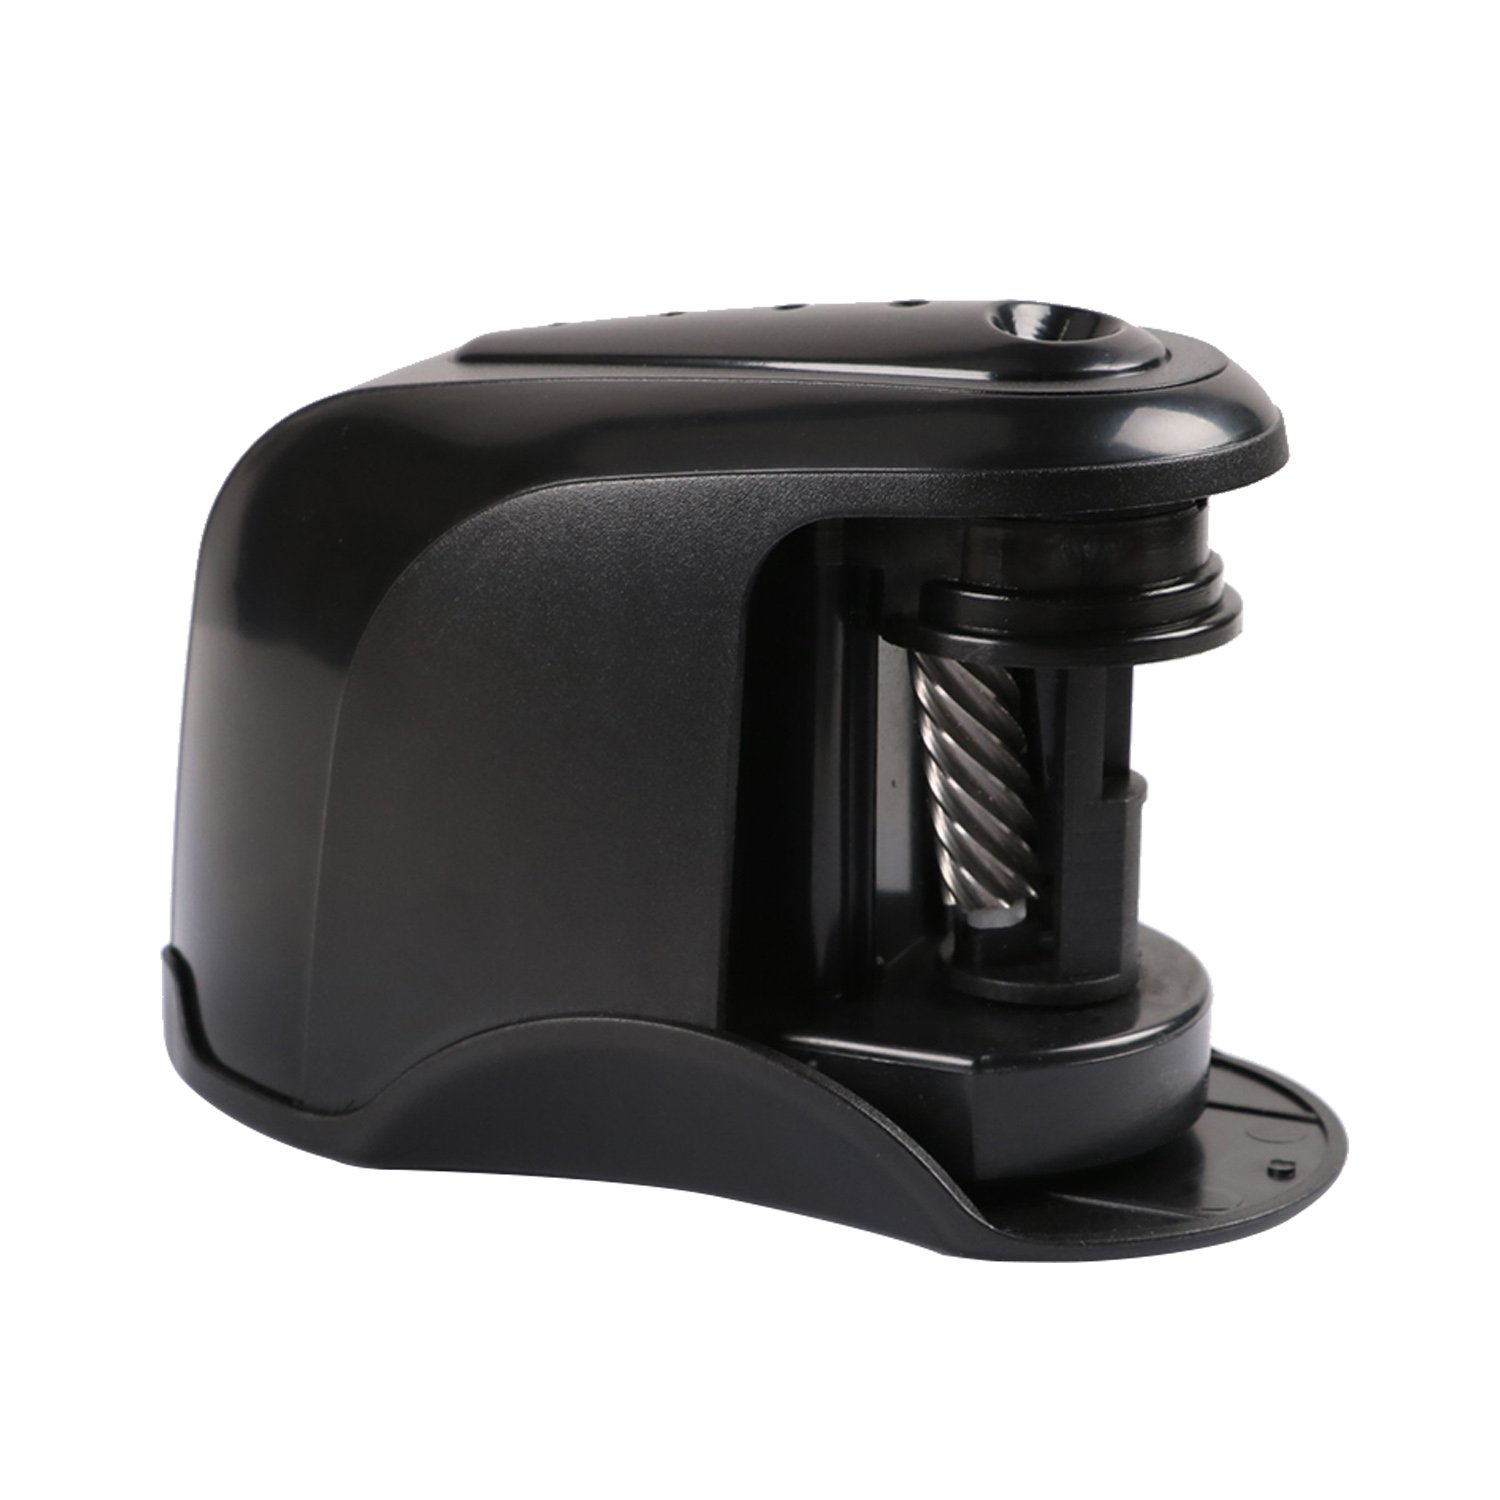 Home Study Office Use For School Classroom ULT-unite Pencil Sharpener with Auto-Stop Feature Electric Durable and Portable for 6.5-8mm diameter Pencils